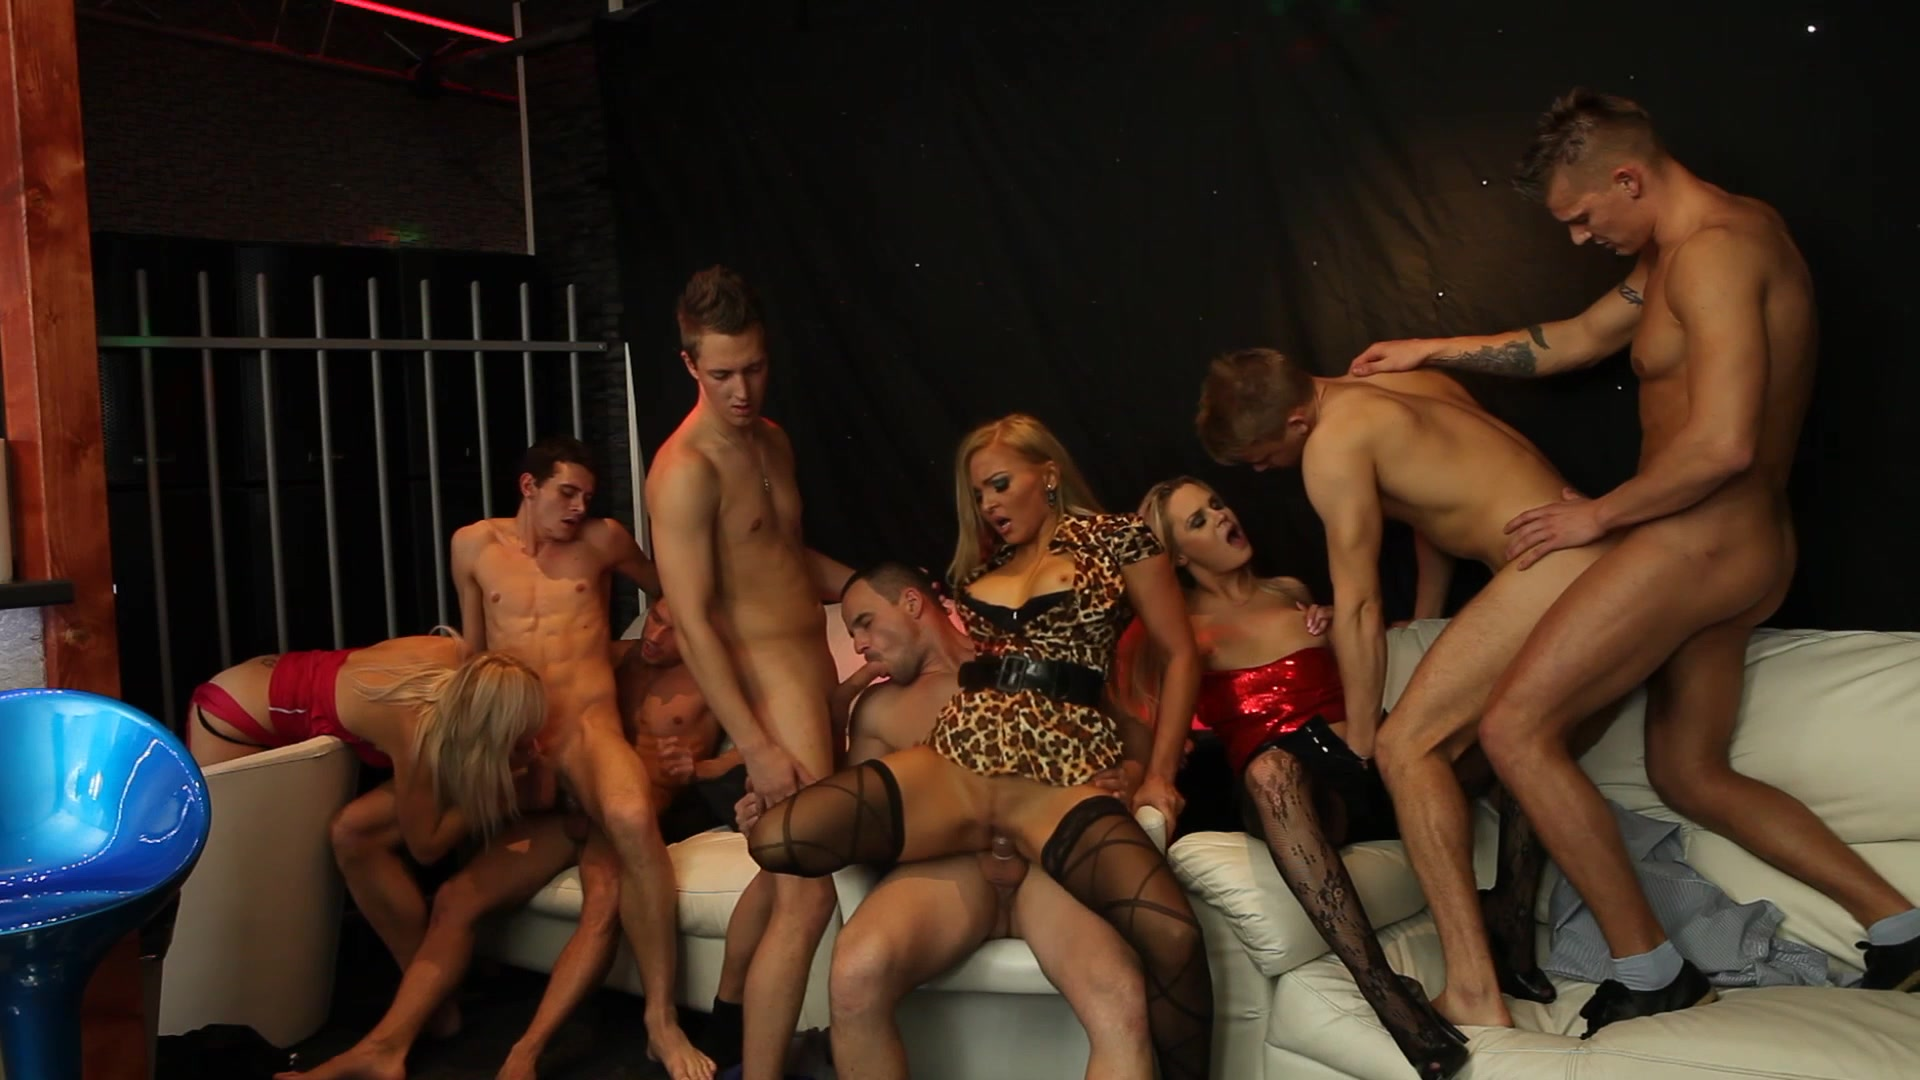 Best porn party bisex fuck fest gif pussyhammer casting